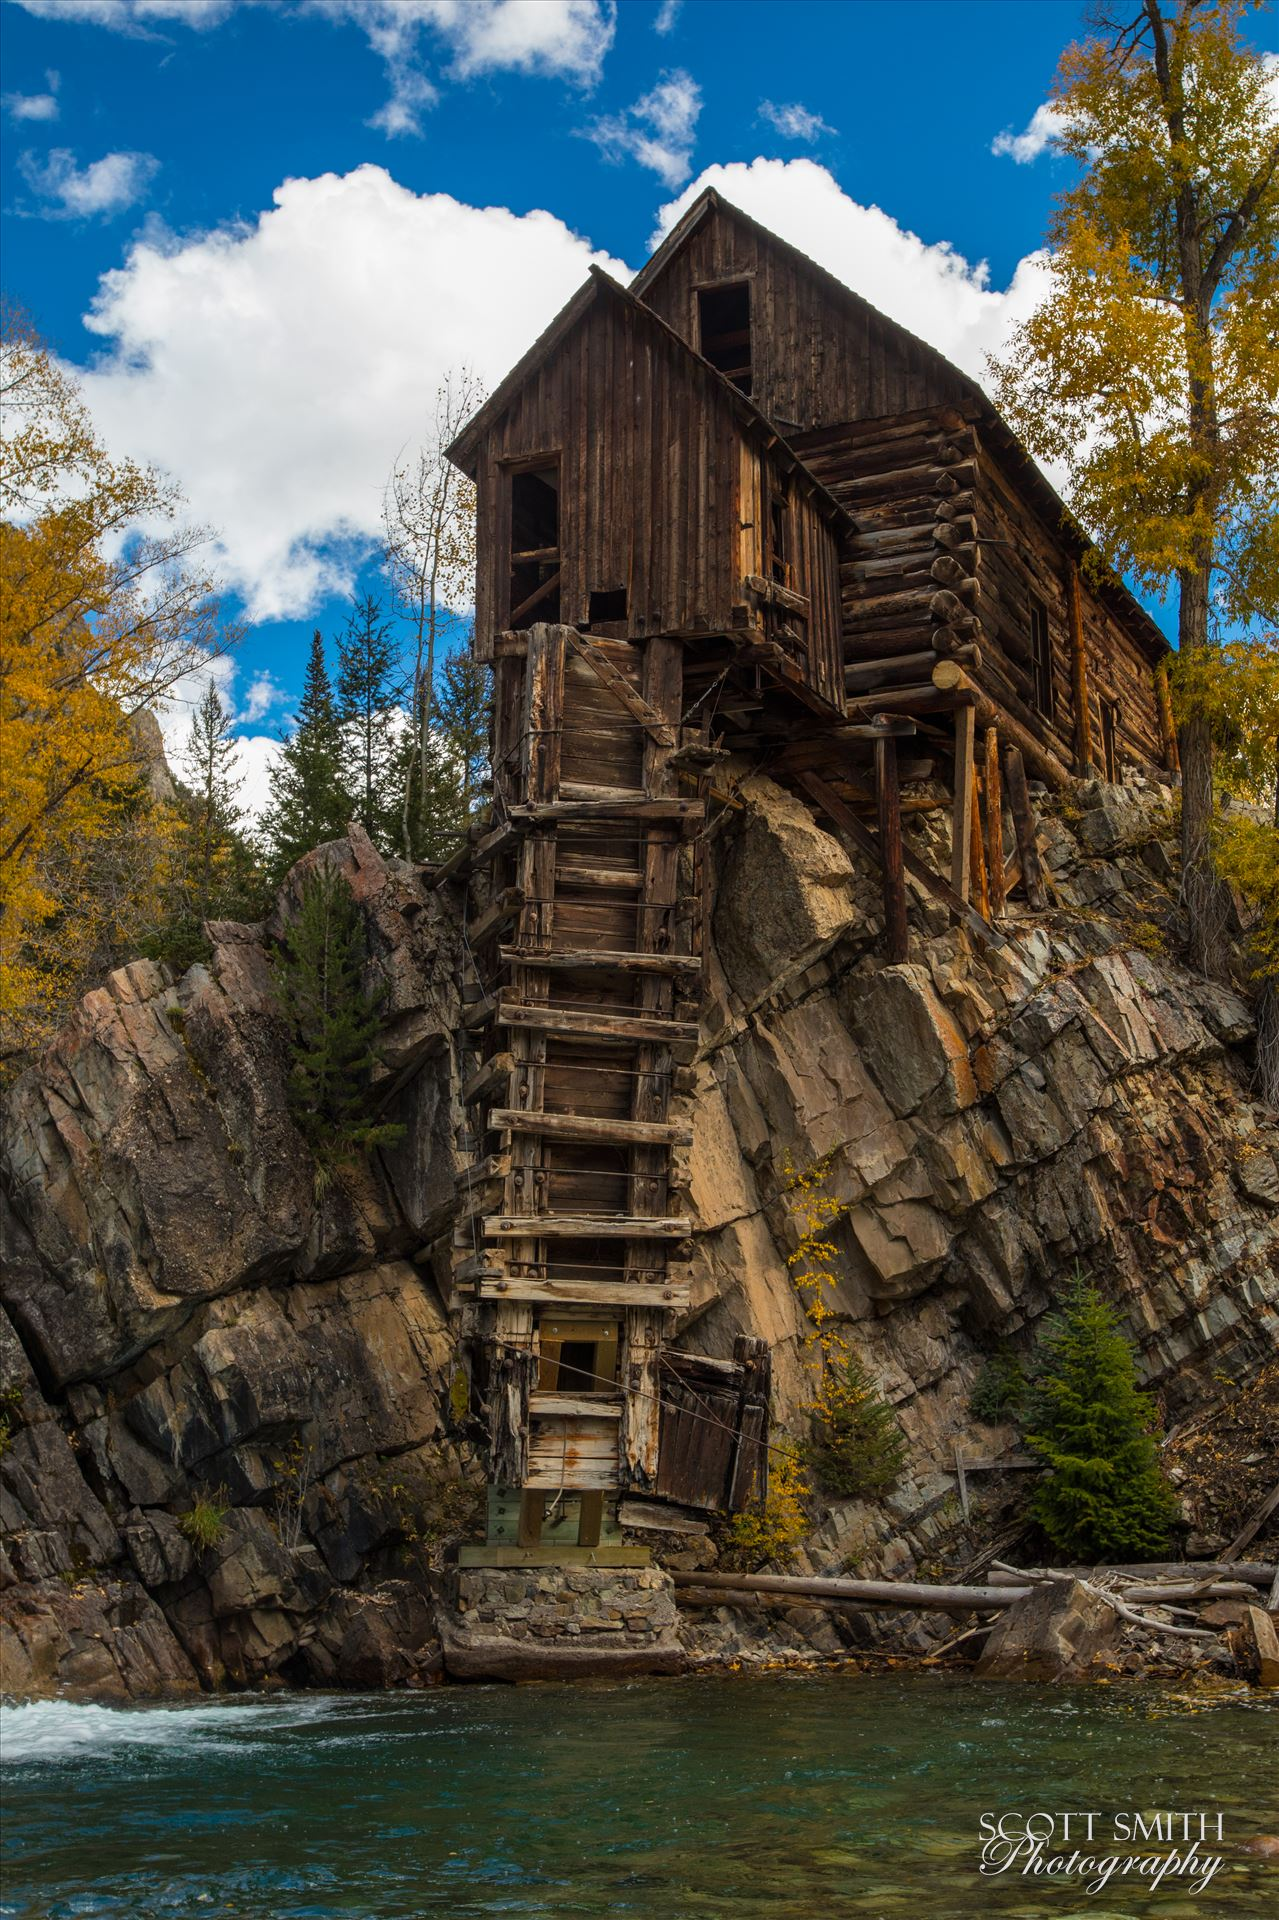 Crystal Mill, Colorado 13 - The Crystal Mill, or the Old Mill is an 1892 wooden powerhouse located on an outcrop above the Crystal River in Crystal, Colorado by D Scott Smith